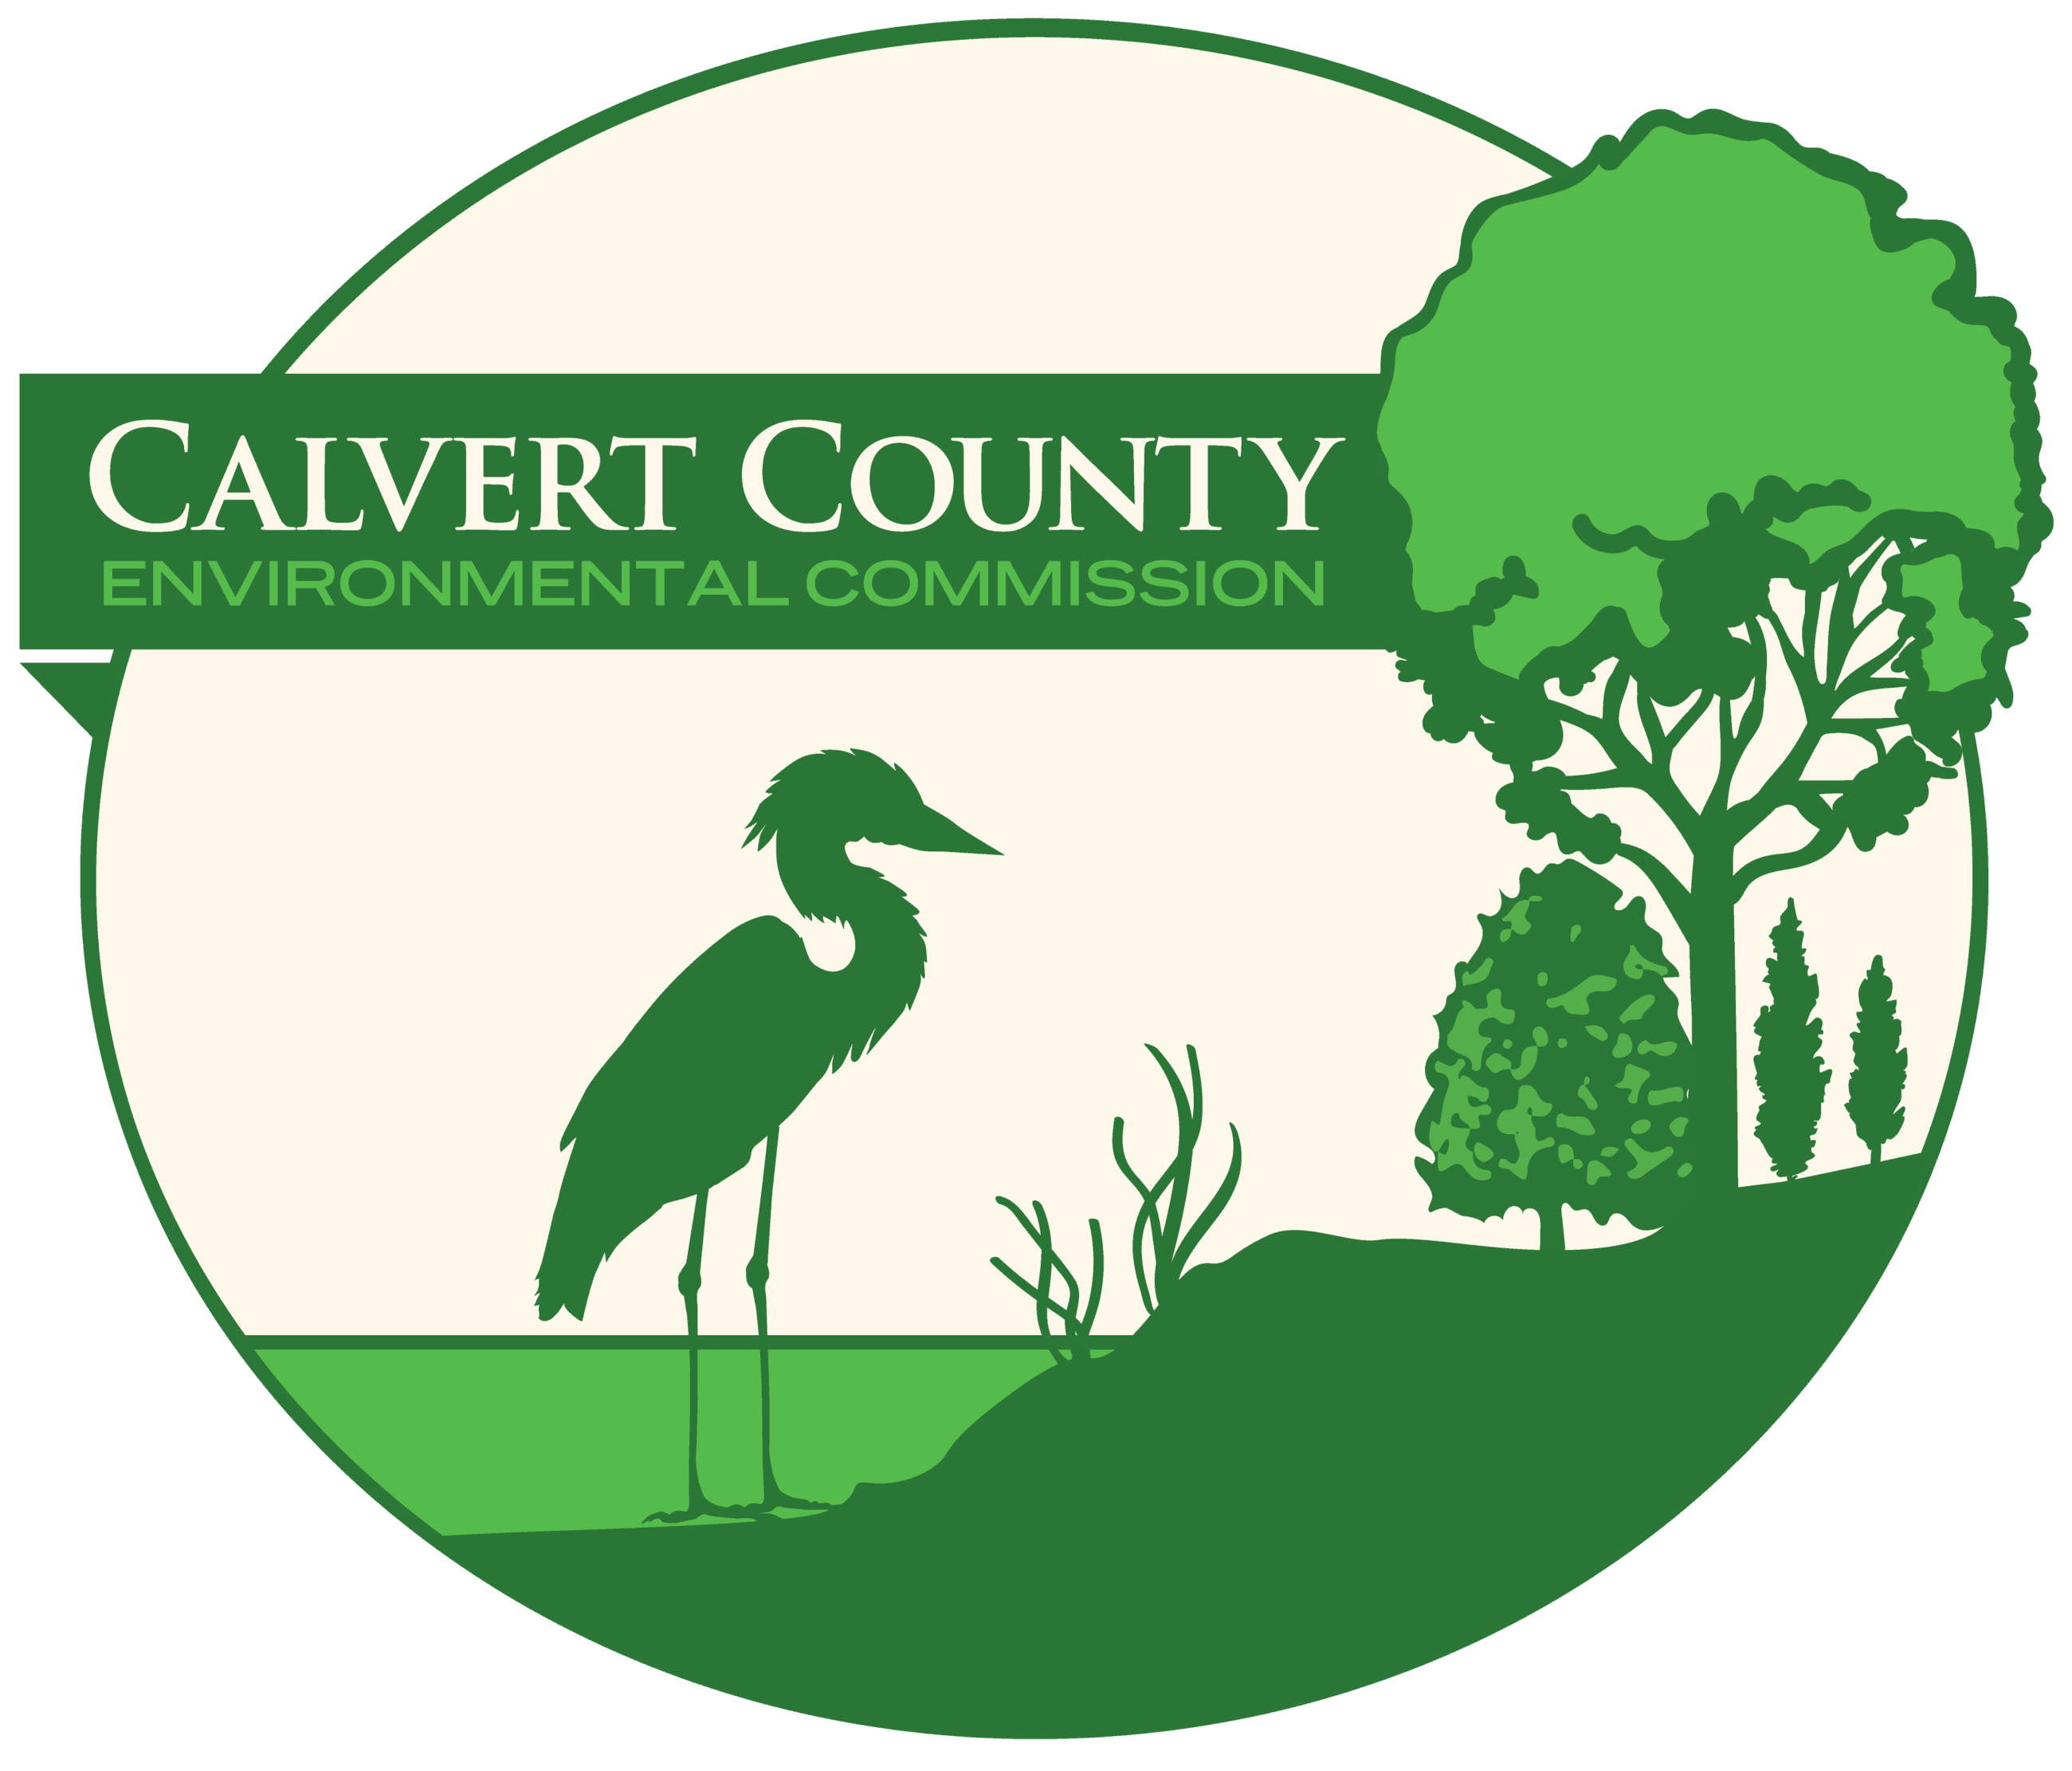 Calvert County Environmental Commission Logo 2019